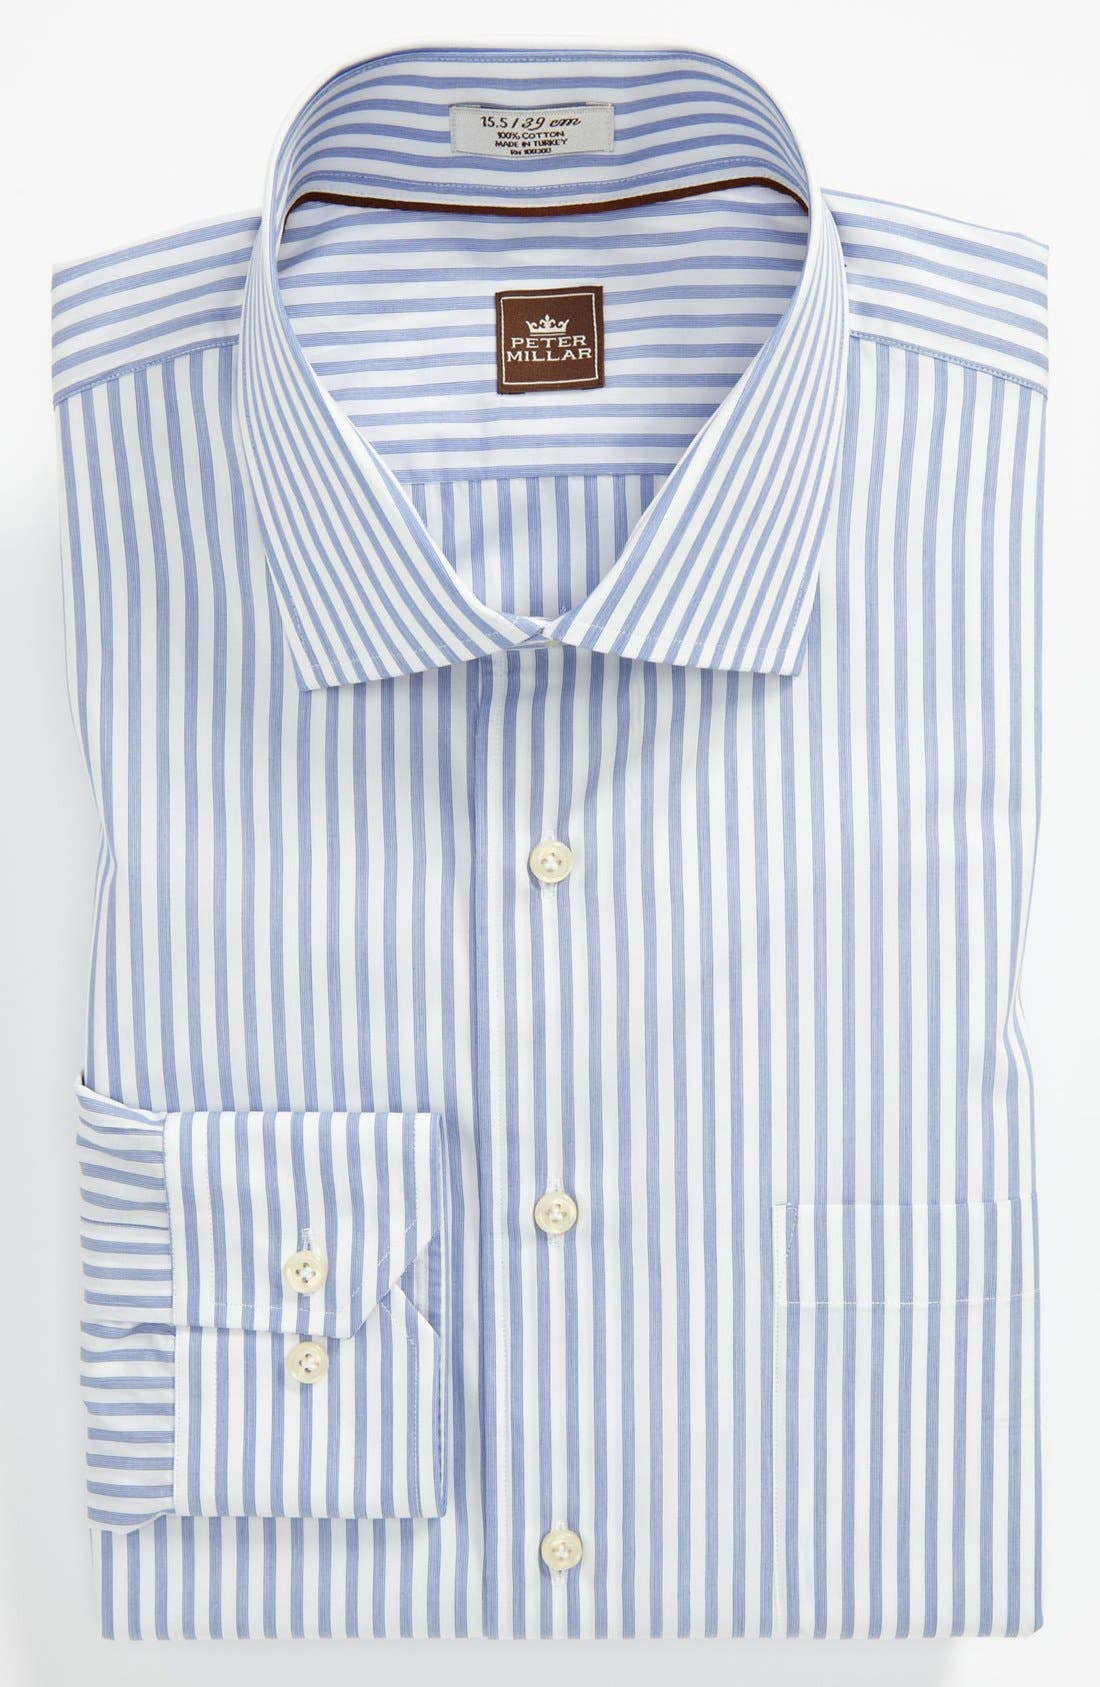 Main Image - Peter Millar Regular Fit Dress Shirt